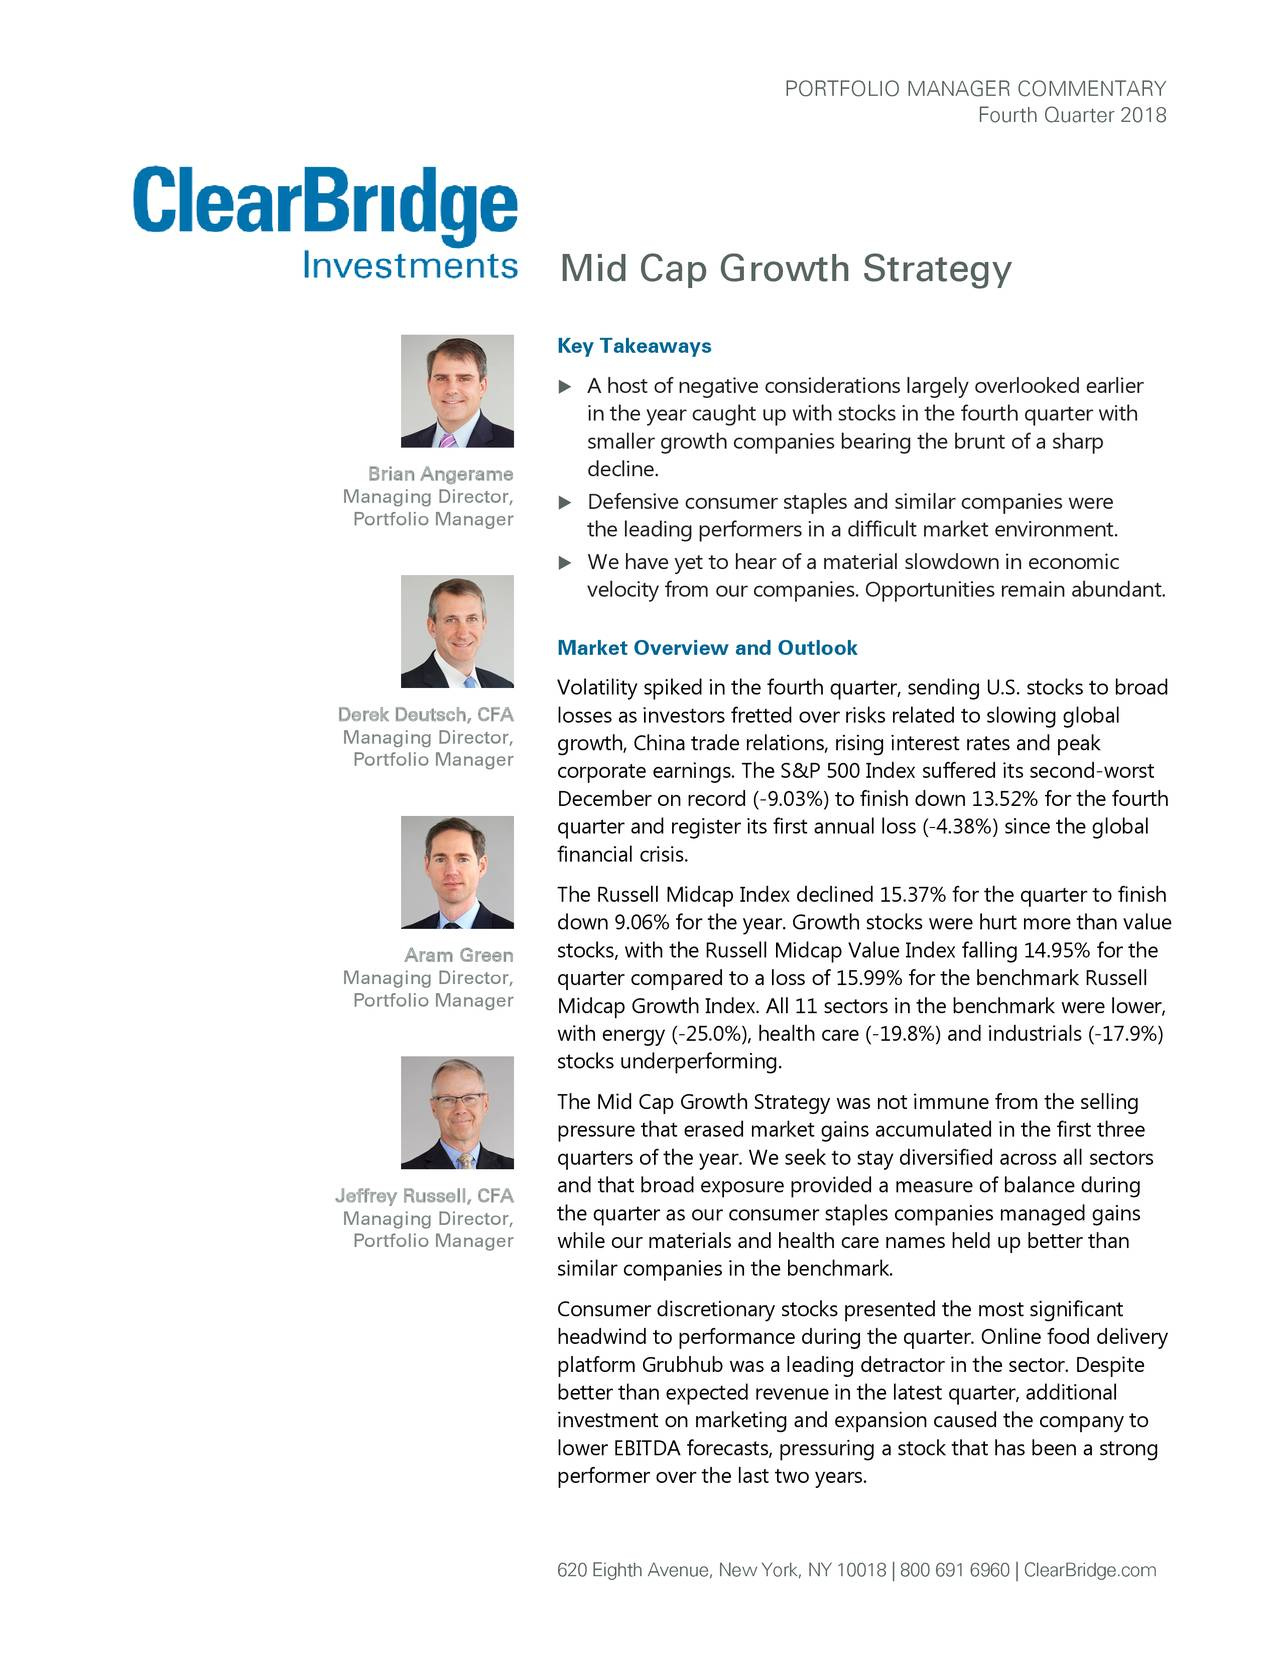 Fourth Quarter 2018 Mid Cap Growth Strategy Key Takeaways  A host of negative considerations largely overlooked earlier in the year caught up with stocks in the fourth quarter with smaller growth companies bearing the brunt of a sharp Brian Angerame decline. Managing Director,  Defensive consumer staples and similar companies were Portfolio Manager the leading performers in a difficult market environment.  We have yet to hear of a material slowdown in economic velocity from our companies. Opportunities remain abundant. Market Overview and Outlook Volatility spiked in the fourth quarter, sending U.S. stocks to broad Derek Deutsch, CFA losses as investors fretted over risks related to slowing global Managing Director, growth, China trade relations, rising interest rates and peak Portfolio Manager corporate earnings. The S&P 500 Index suffered its second-worst December on record (-9.03%) to finish down 13.52% for the fourth quarter and register its first annual loss (-4.38%) since the global financial crisis. The Russell Midcap Index declined 15.37% for the quarter to finish down 9.06% for the year. Growth stocks were hurt more than value Aram Green stocks, with the Russell Midcap Value Index falling 14.95% for the Managing Director, quarter compared to a loss of 15.99% for the benchmark Russell Portfolio Manager Midcap Growth Index. All 11 sectors in the benchmark were lower, with energy (-25.0%), health care (-19.8%) and industrials (-17.9%) stocks underperforming. The Mid Cap Growth Strategy was not immune from the selling pressure that erased market gains accumulated in the first three quarters of the year. We seek to stay diversified across all sectors Jeffrey Russell, CFA and that broad exposure provided a measure of balance during the quarter as our consumer staples companies managed gains Managing Director, Portfolio Manager while our materials and health care names held up better than similar companies in the benchmark. Consumer discretionary stocks presented the most significant headwind to performance during the quarter. Online food delivery platform Grubhub was a leading detractor in the sector. Despite better than expected revenue in the latest quarter, additional investment on marketing and expansion caused the company to lower EBITDA forecasts, pressuring a stock that has been a strong performer over the last two years. 620 Eighth Avenue, New York, NY 10018 | 800 691 6960 | ClearBridge.com